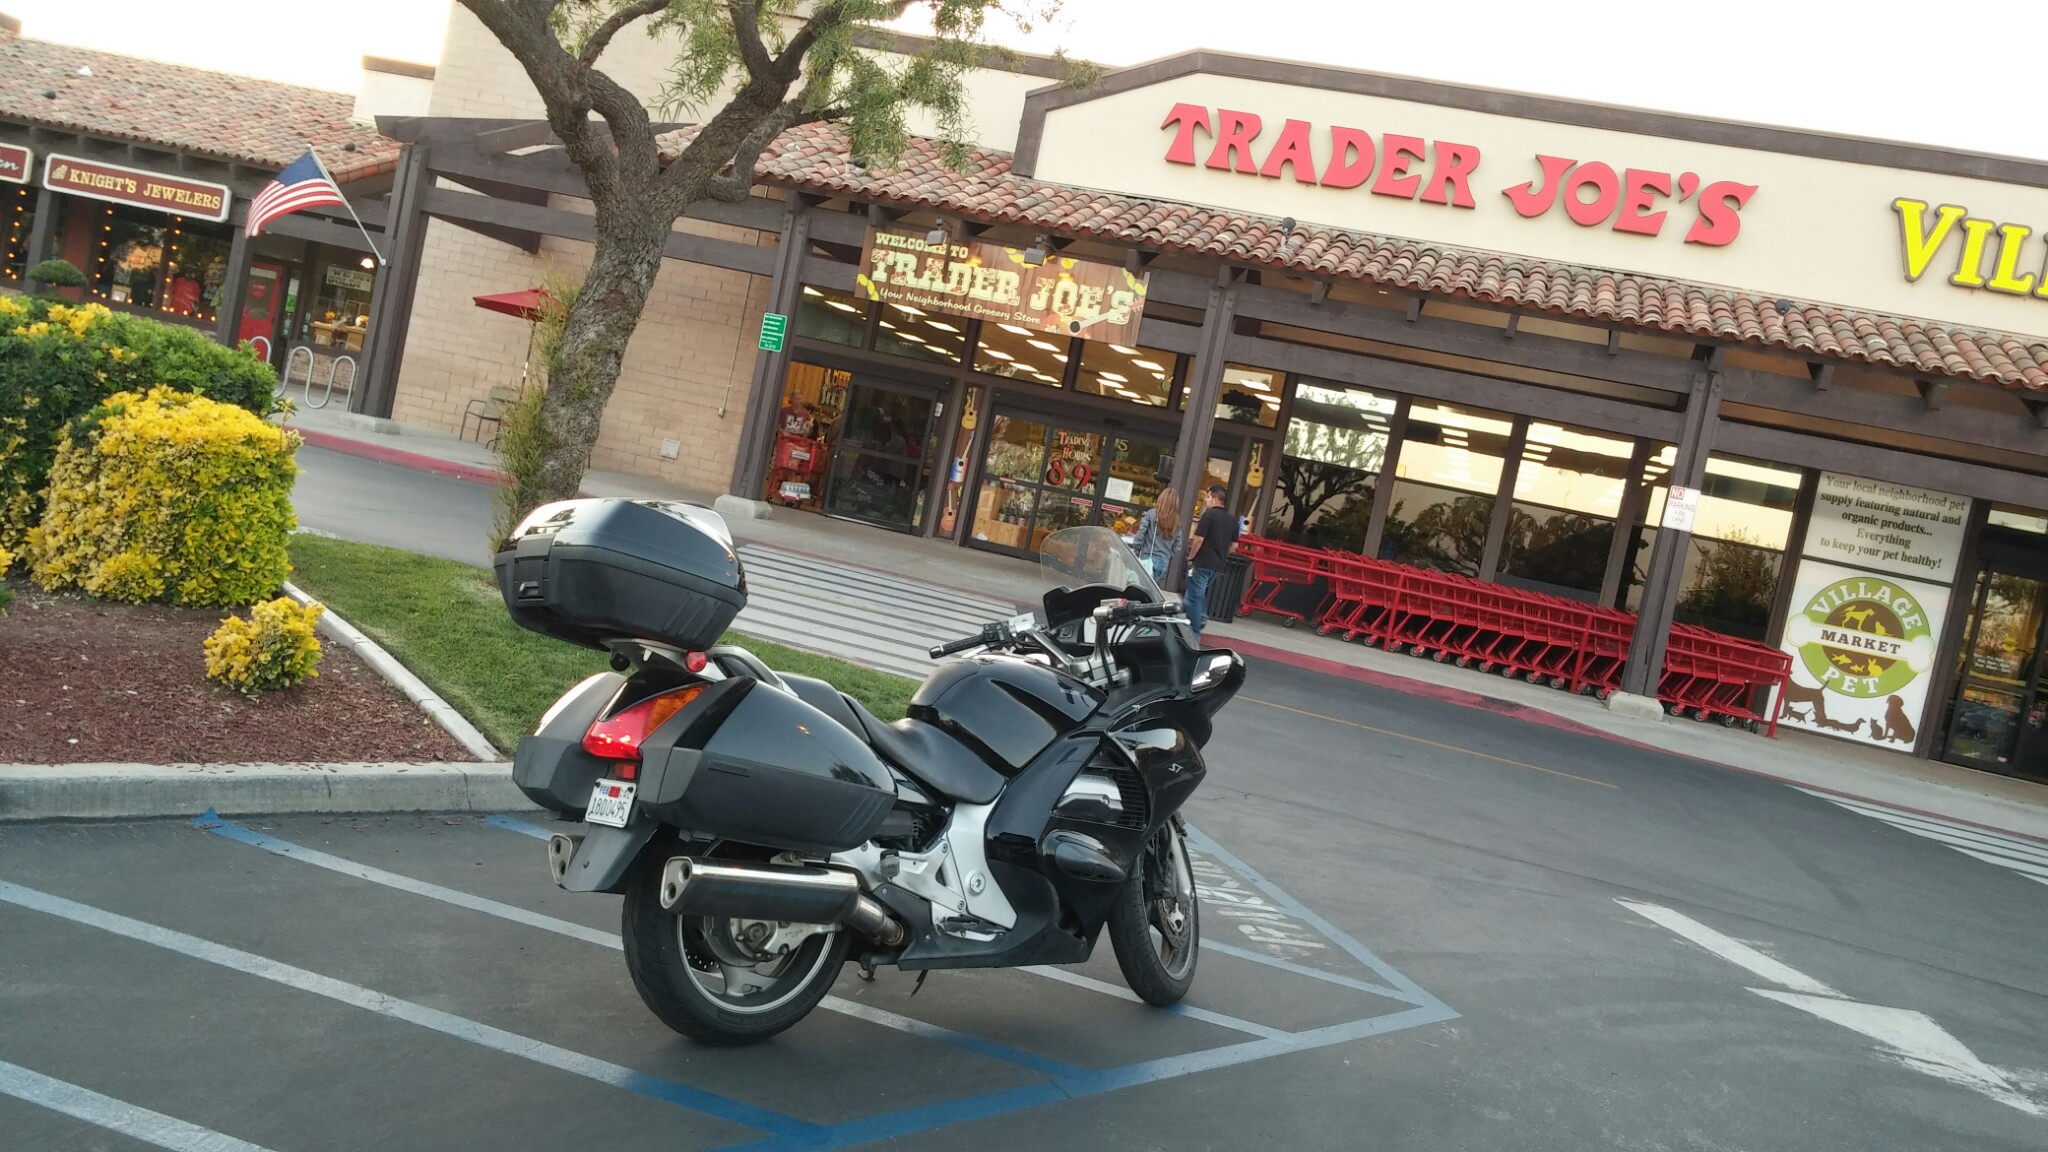 trader joes bakersfield. Motorcycling in Bakersfield  CA   Road Pickle